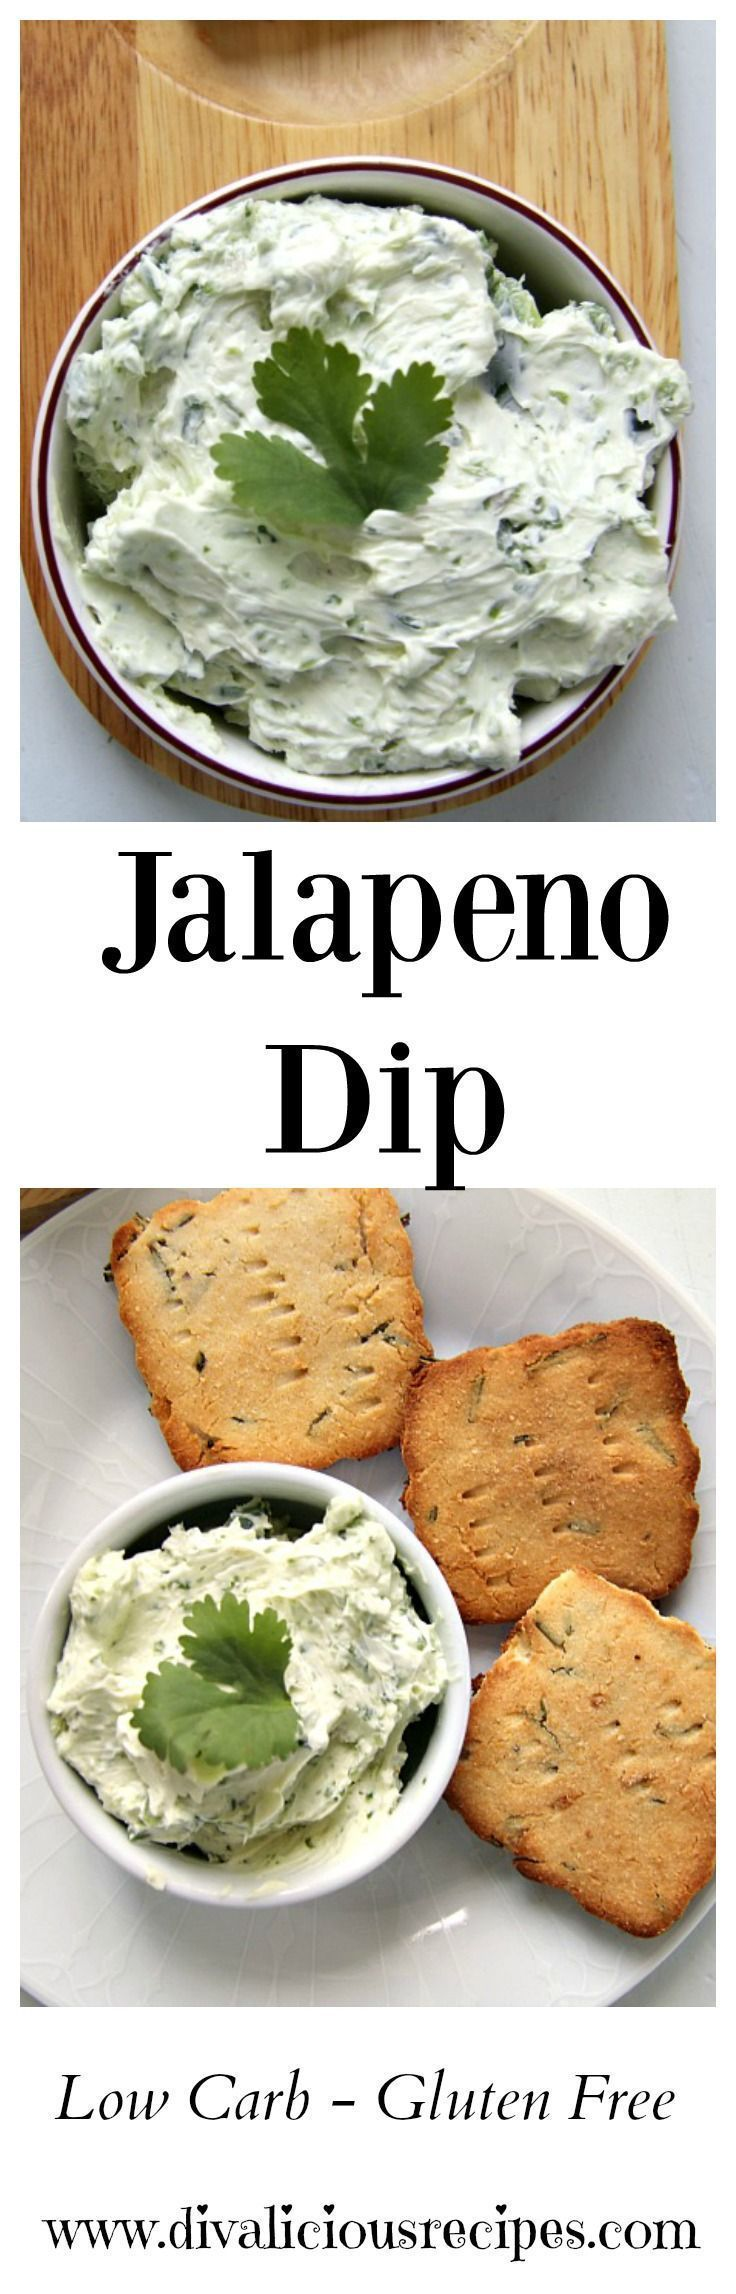 Jalapeno Cream Cheese Dip  Recipe: http://divaliciousrecipes.com/2017/05/01/jalapeno-cream-cheese-dip/